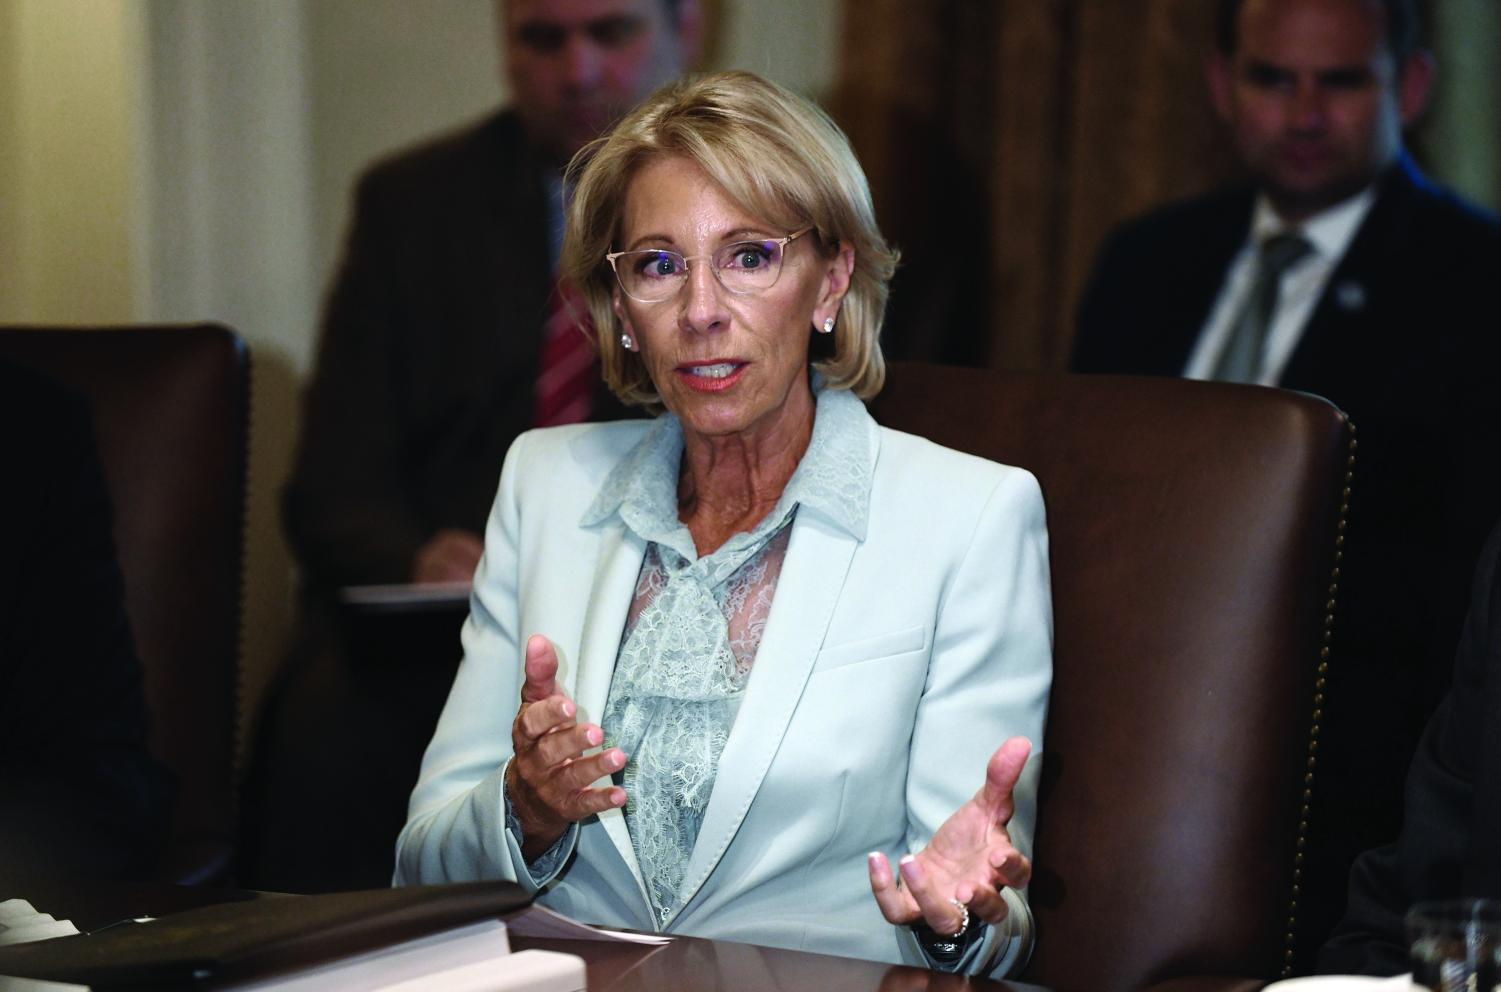 (Source: Tribune News Service) Education Secretary Betsy Devos issued interim Title IX guidelines that permitted Northwestern to abandon the 60-day timeline requirement. Devos is expected to issue new, permanent guidelines soon.